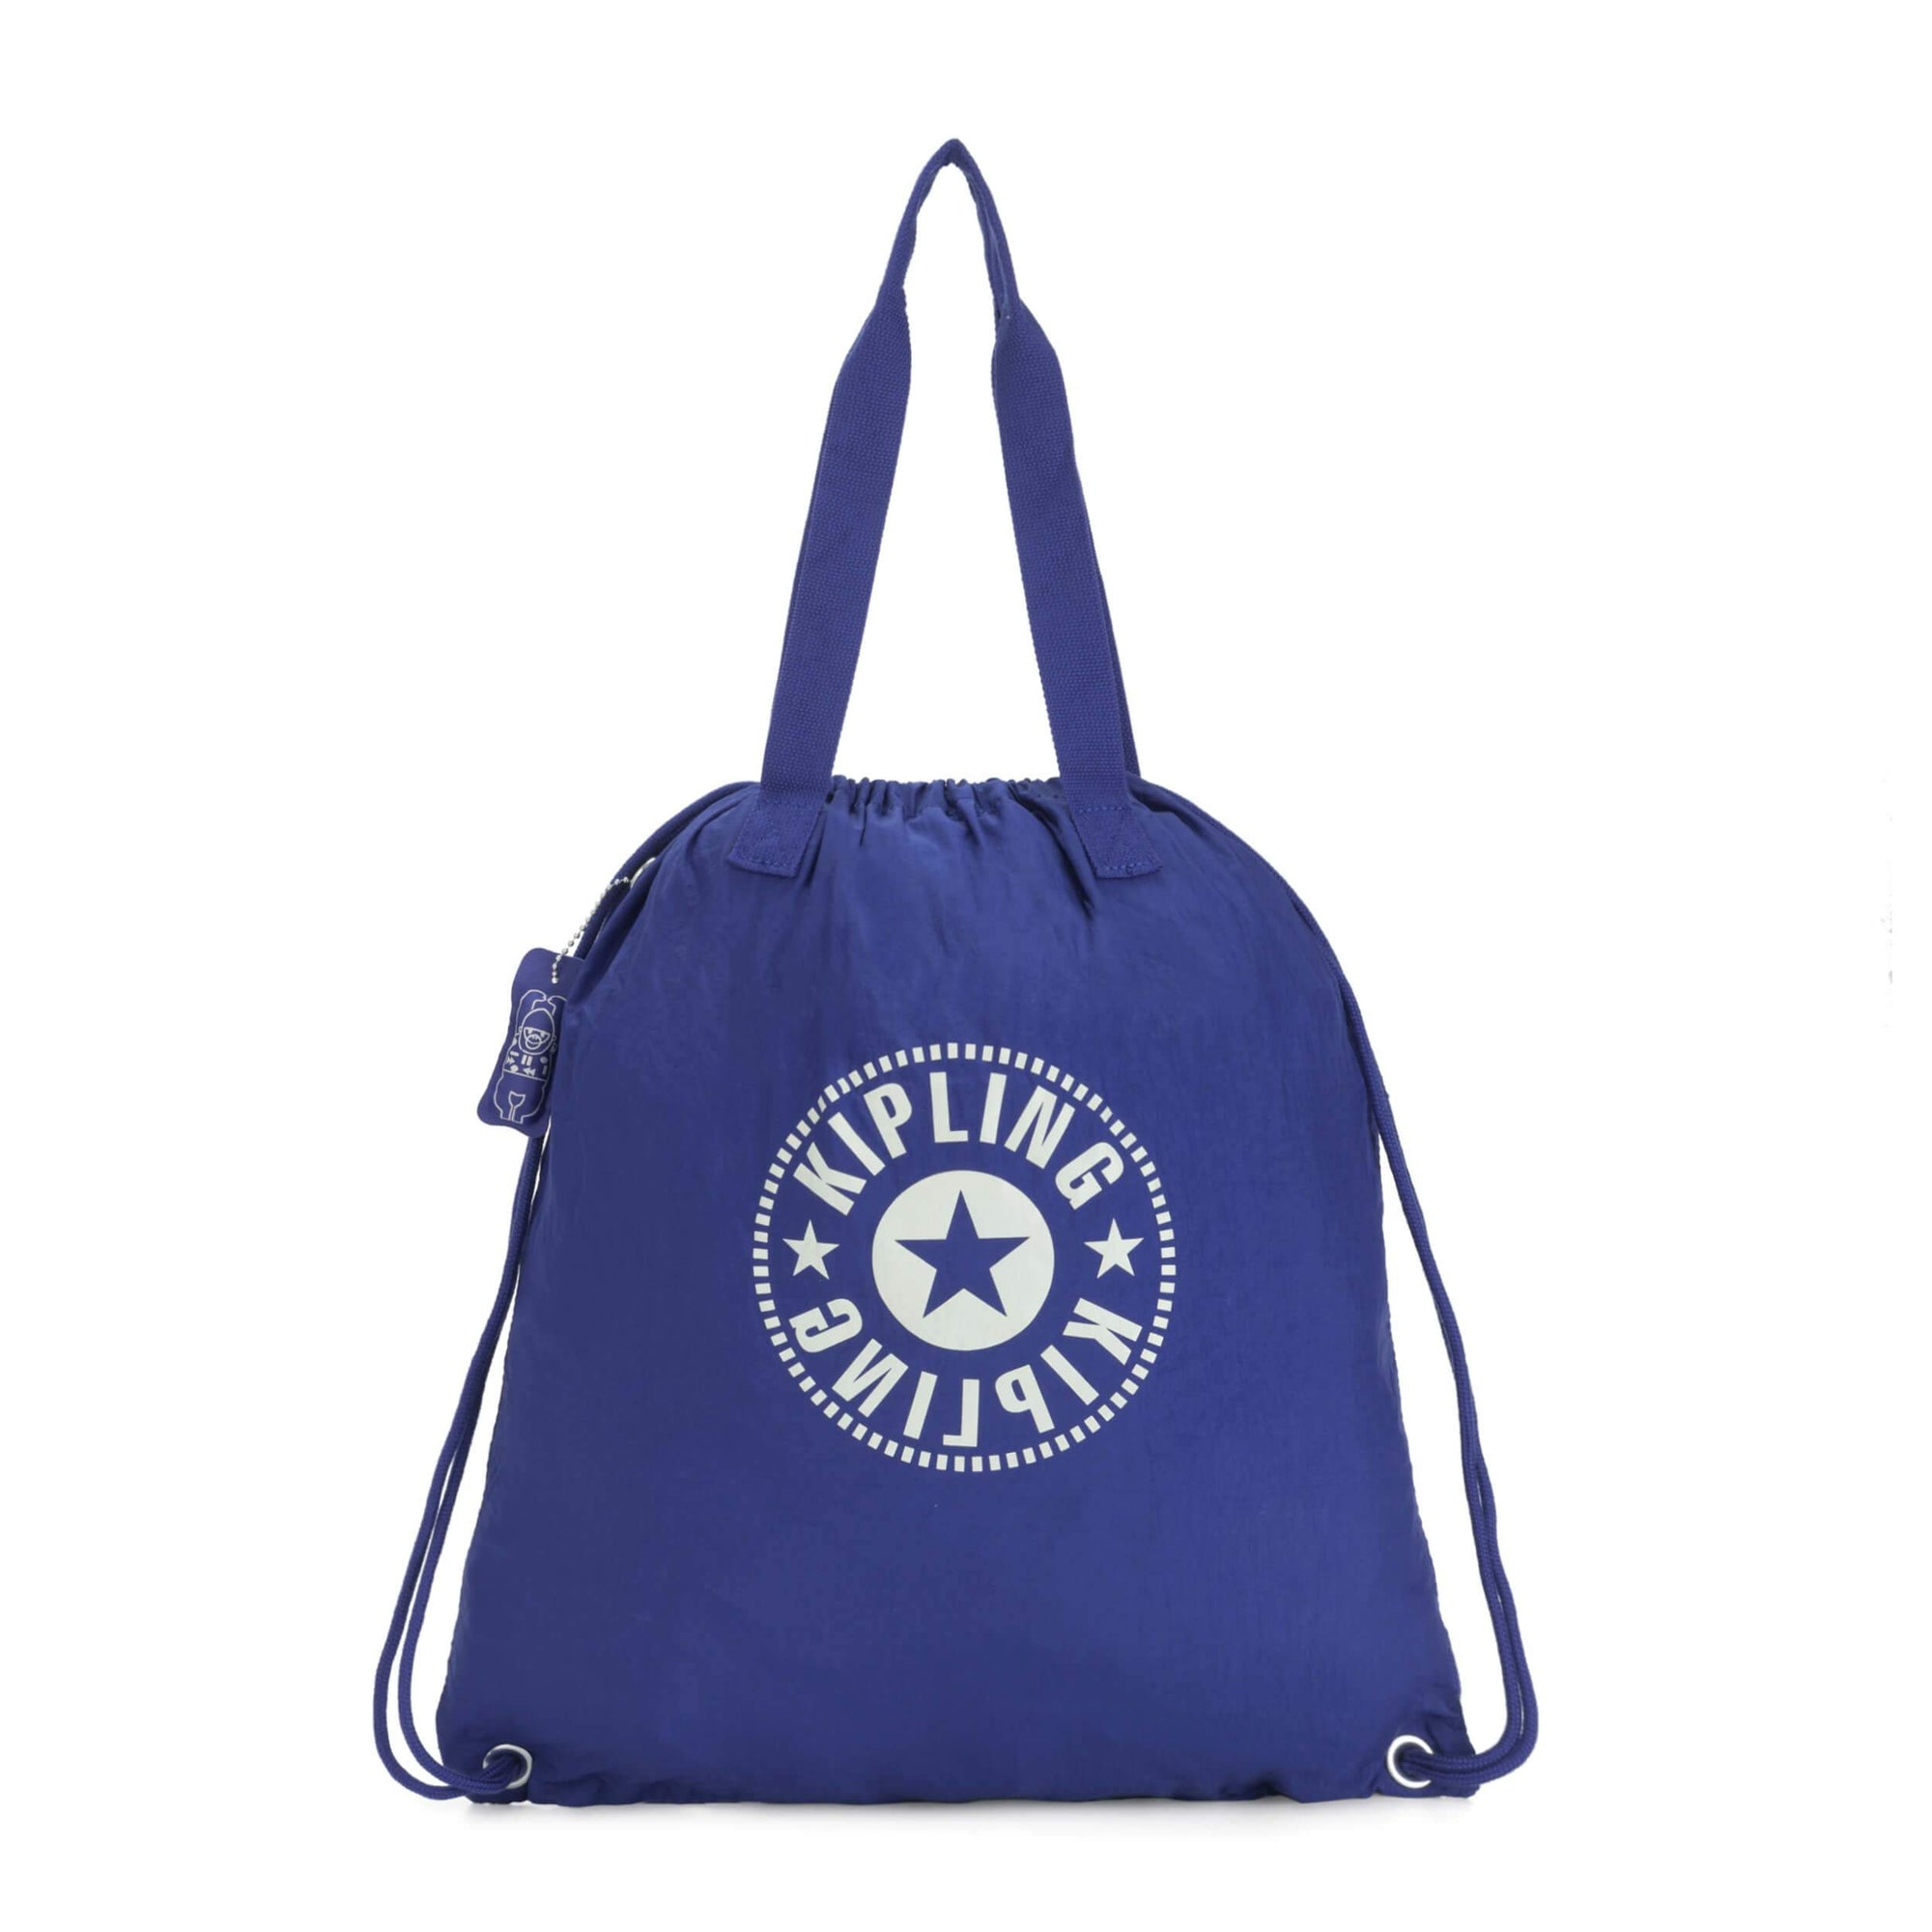 Bolsa Kipling Drawpack - Plegable Laserblue Light KI496549S